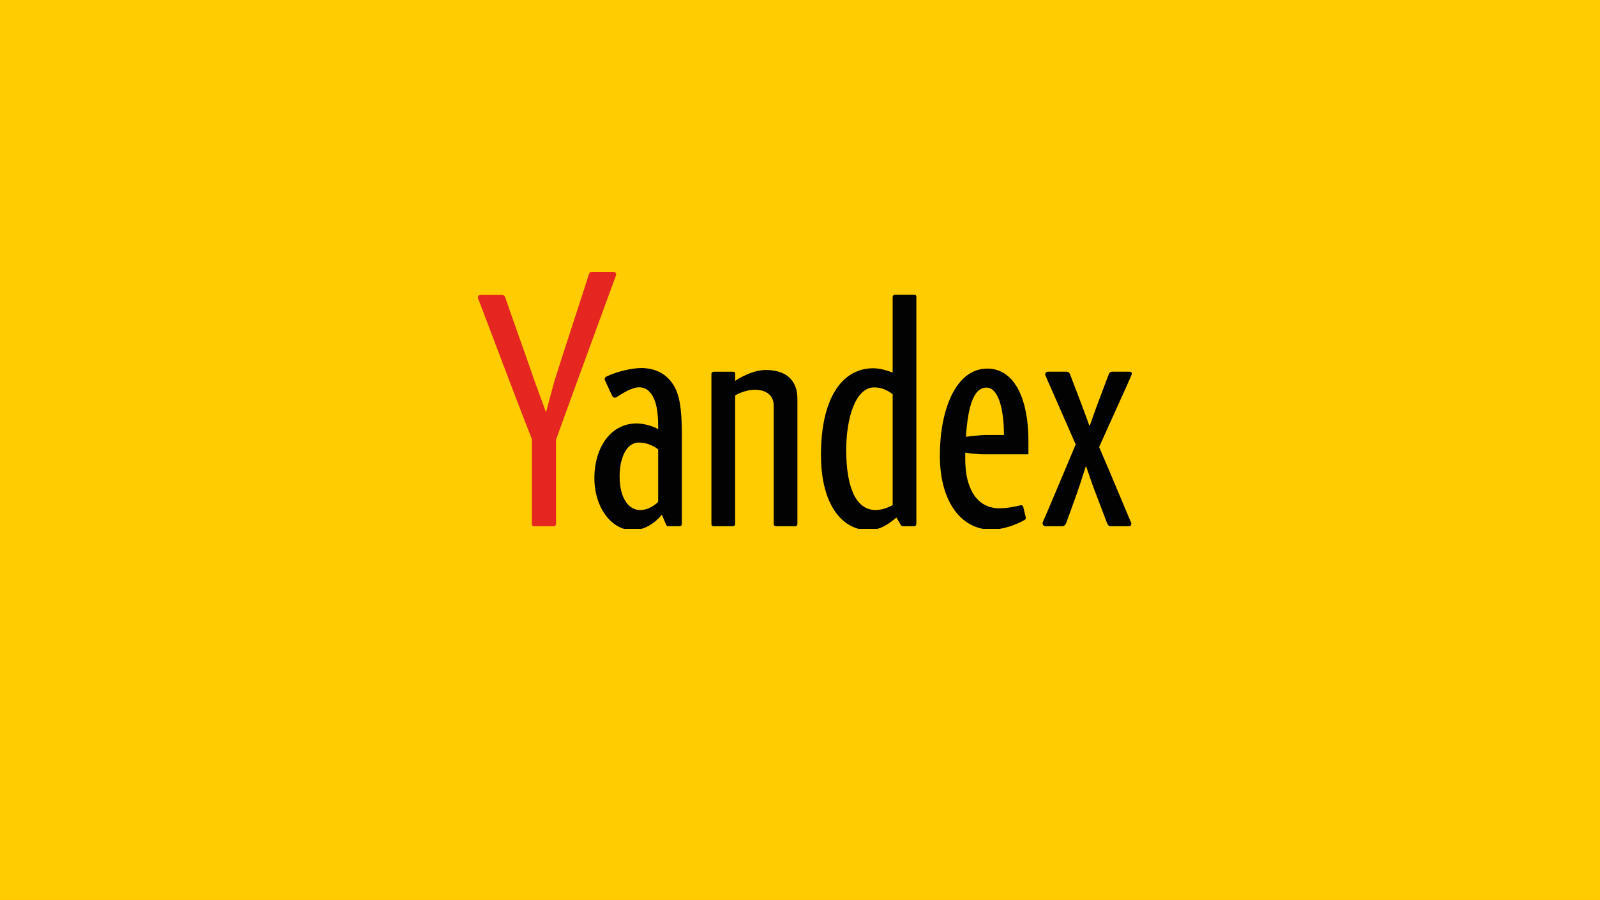 Yandex Webmaster Tools | How to Verify Sites Step-by-step